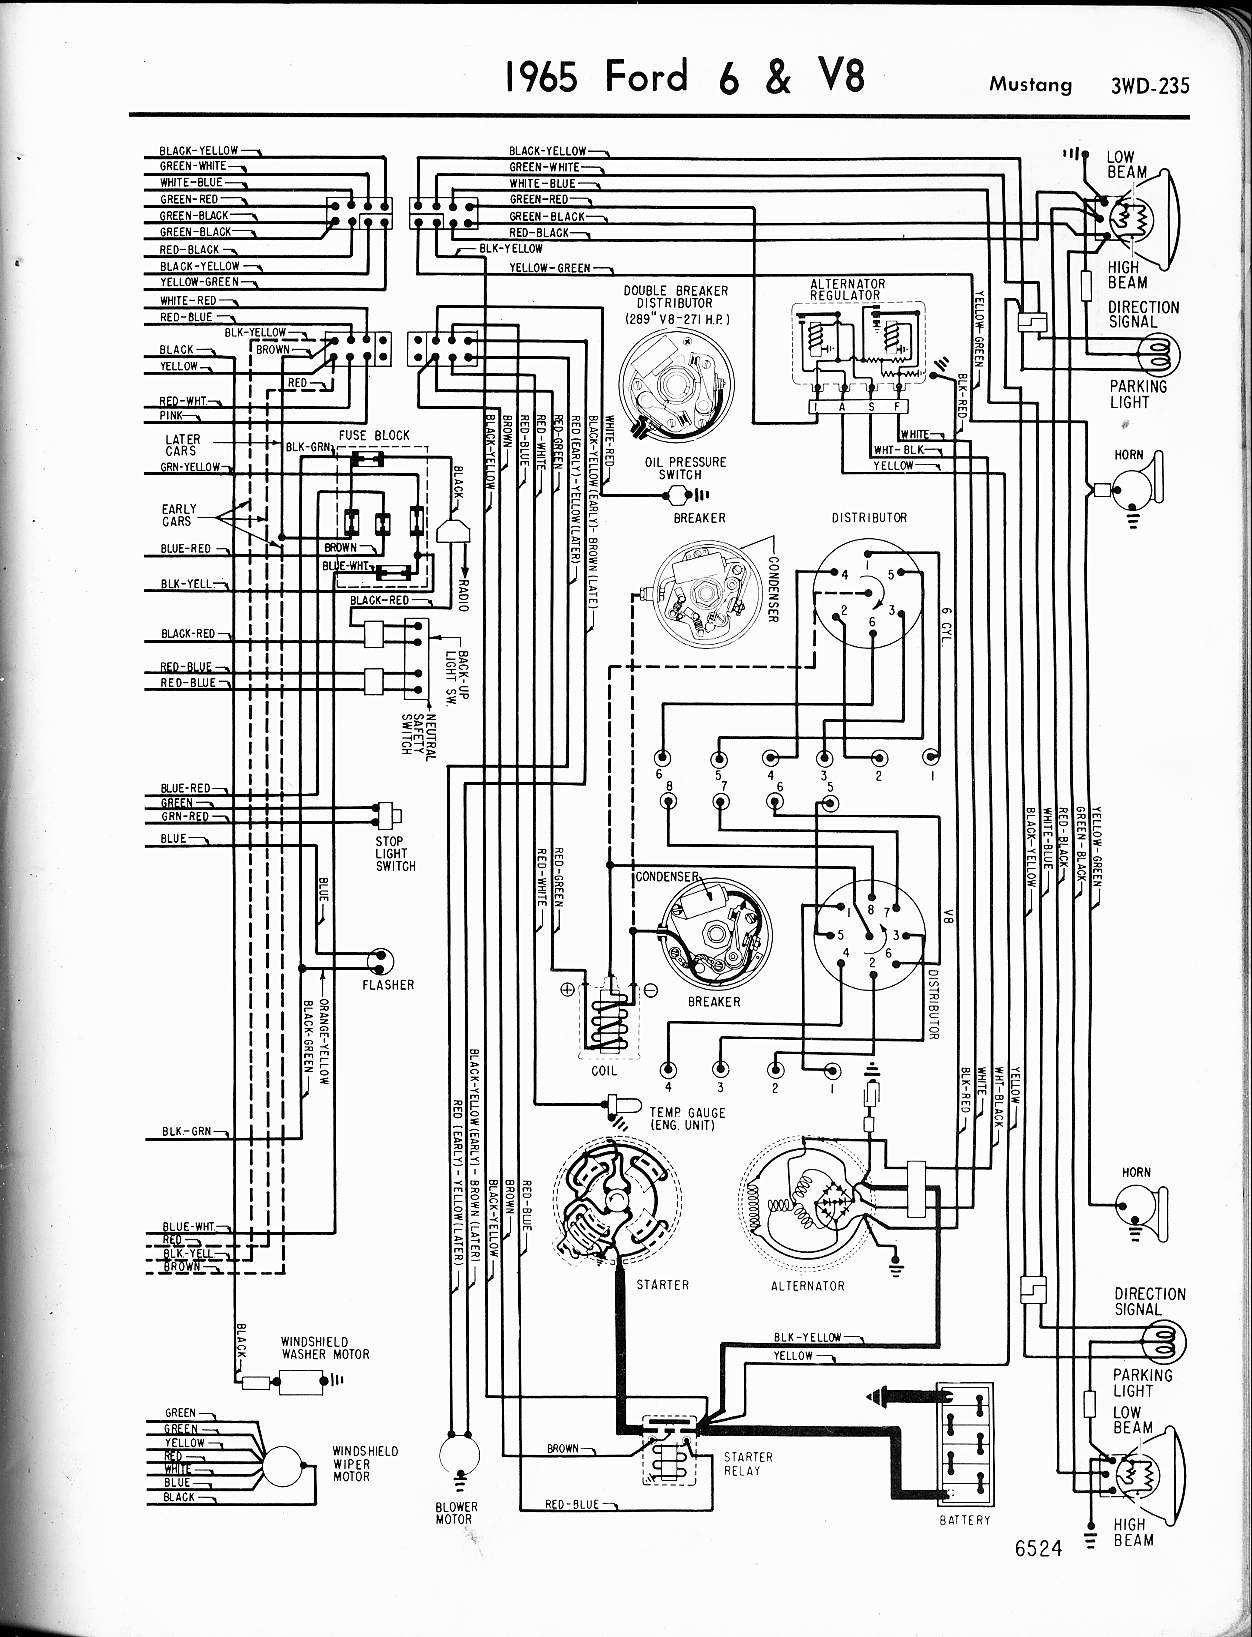 ford diagrams 03 mustang gt fuse diagram 65 mustang wiring diagram 2 drawing b